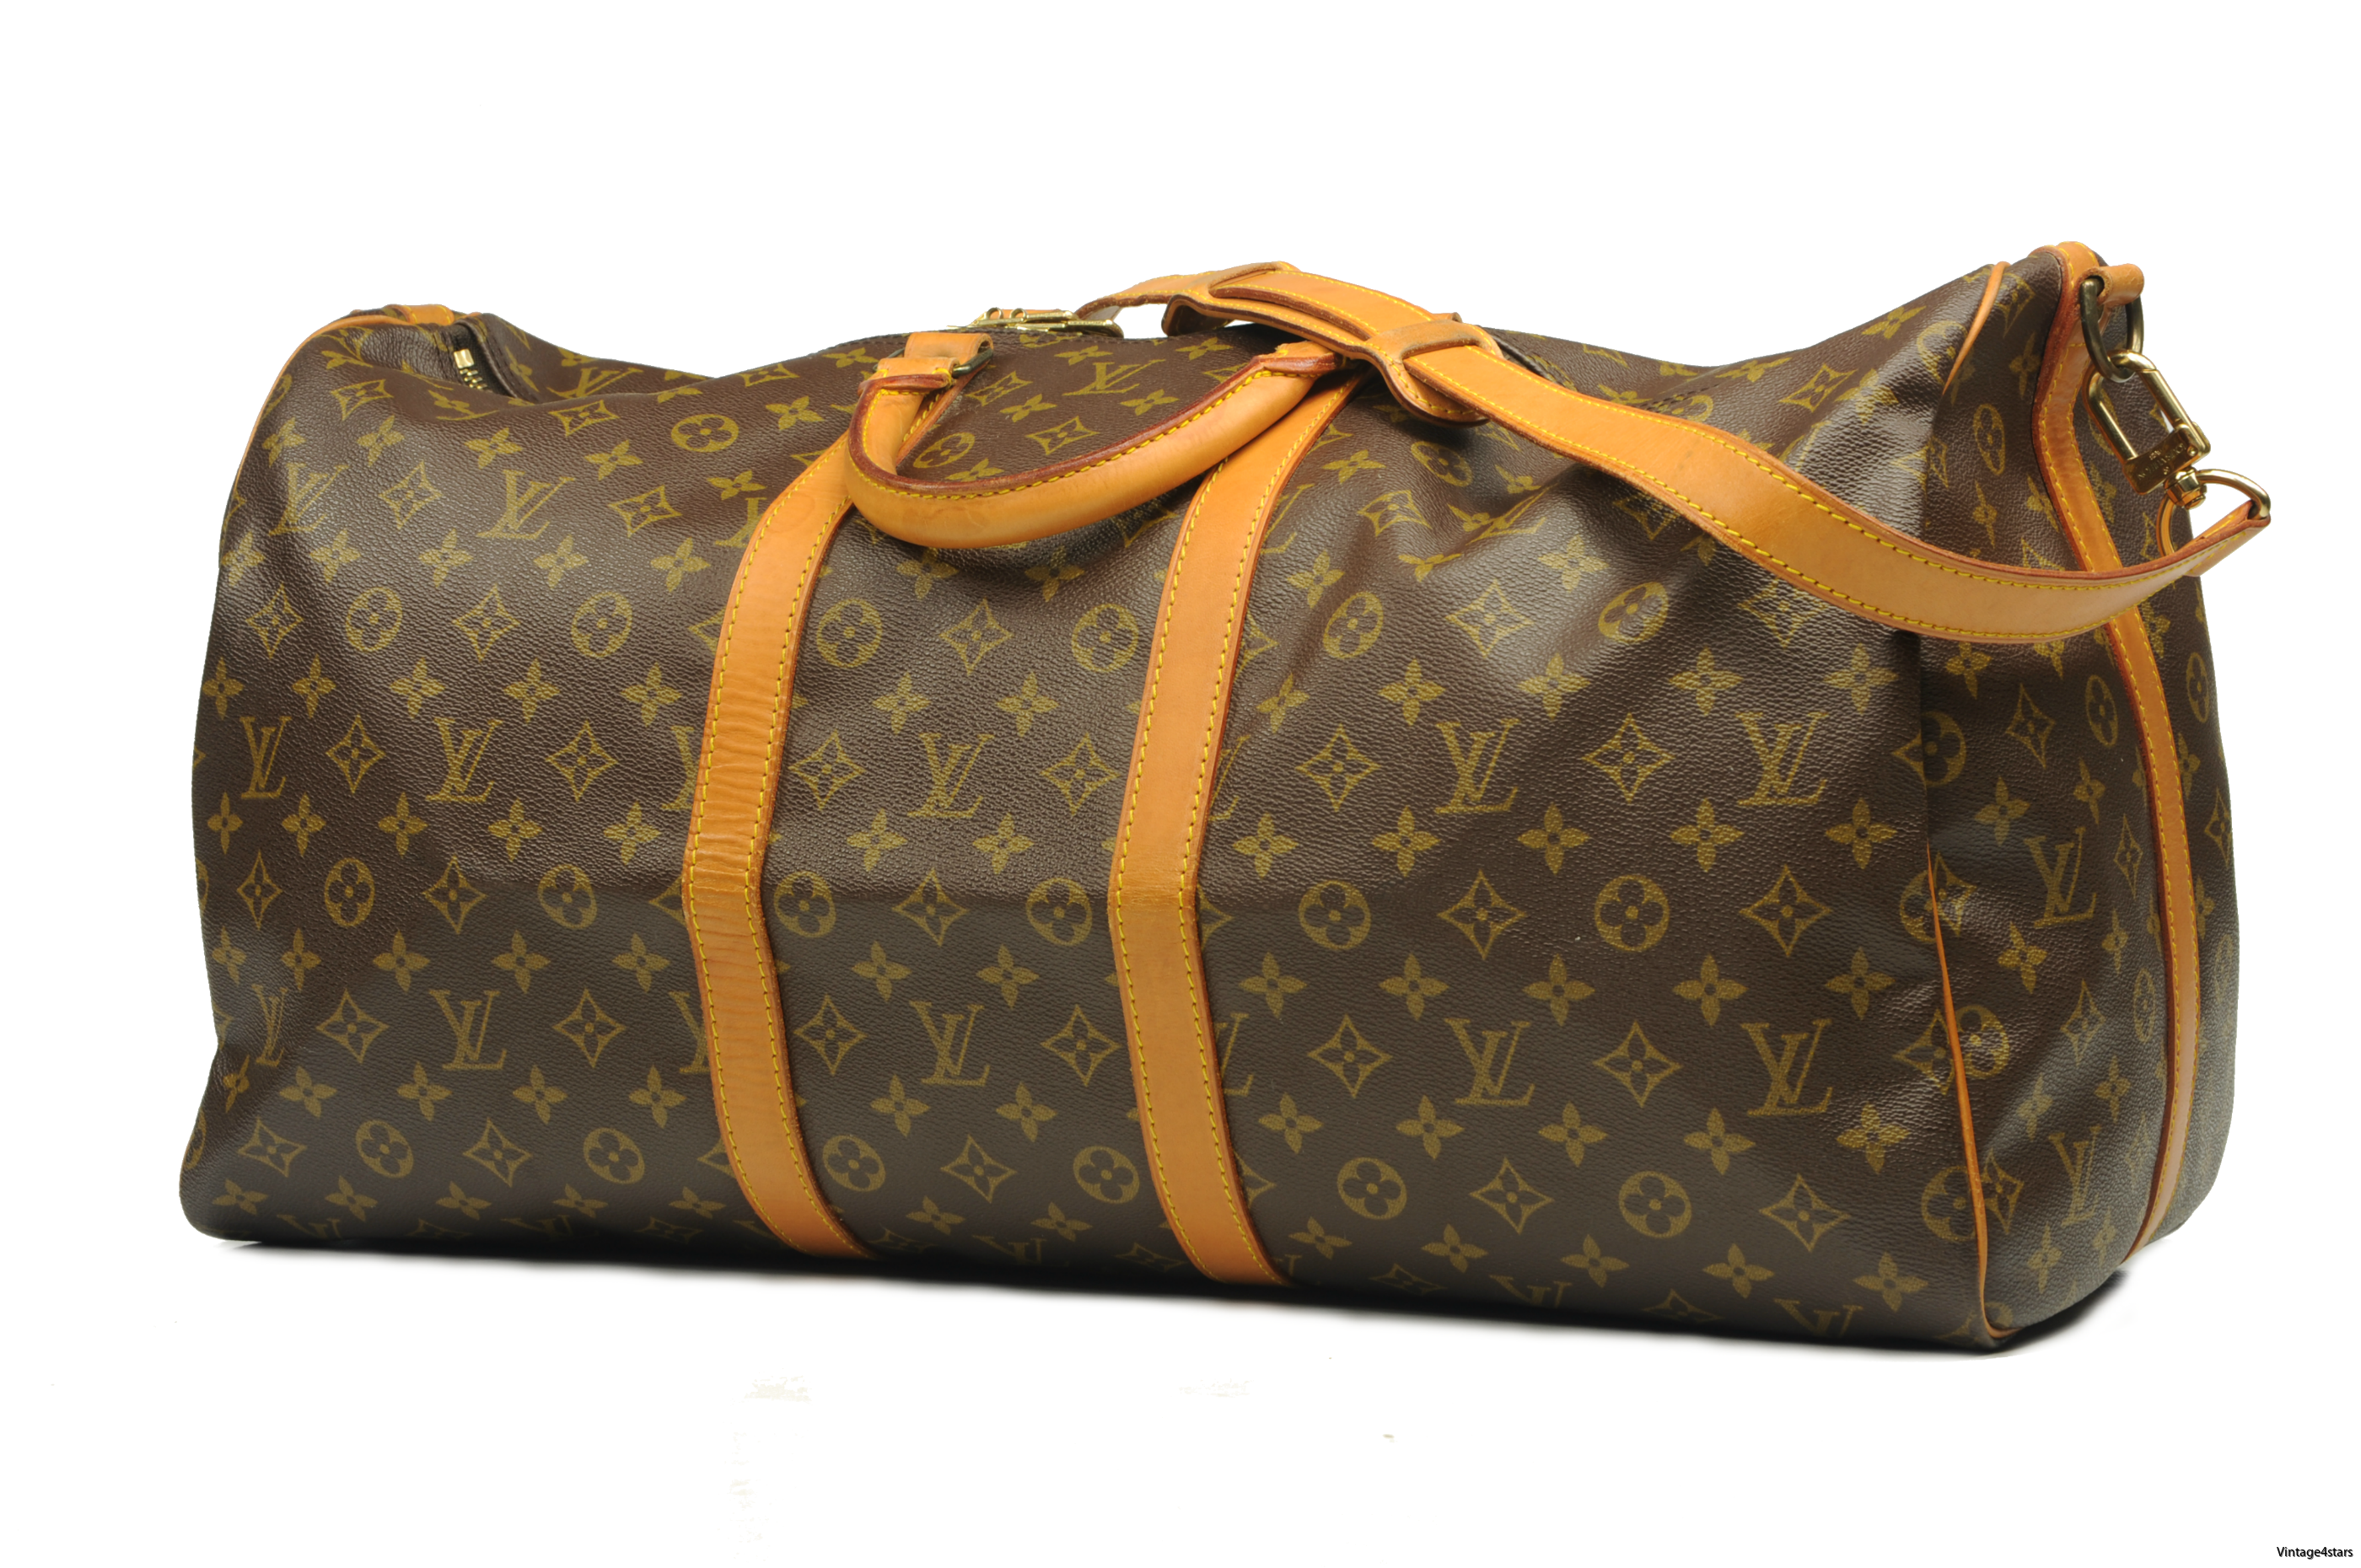 Louis Vuitton Keepall 55 Bandouliere 201